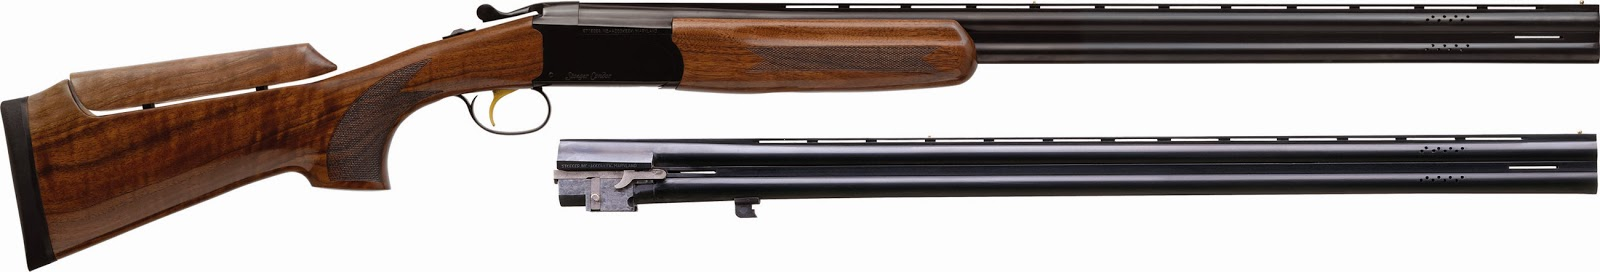 Gun Shot clipart stoeger Shotgun luck: DT M3000 Sporting